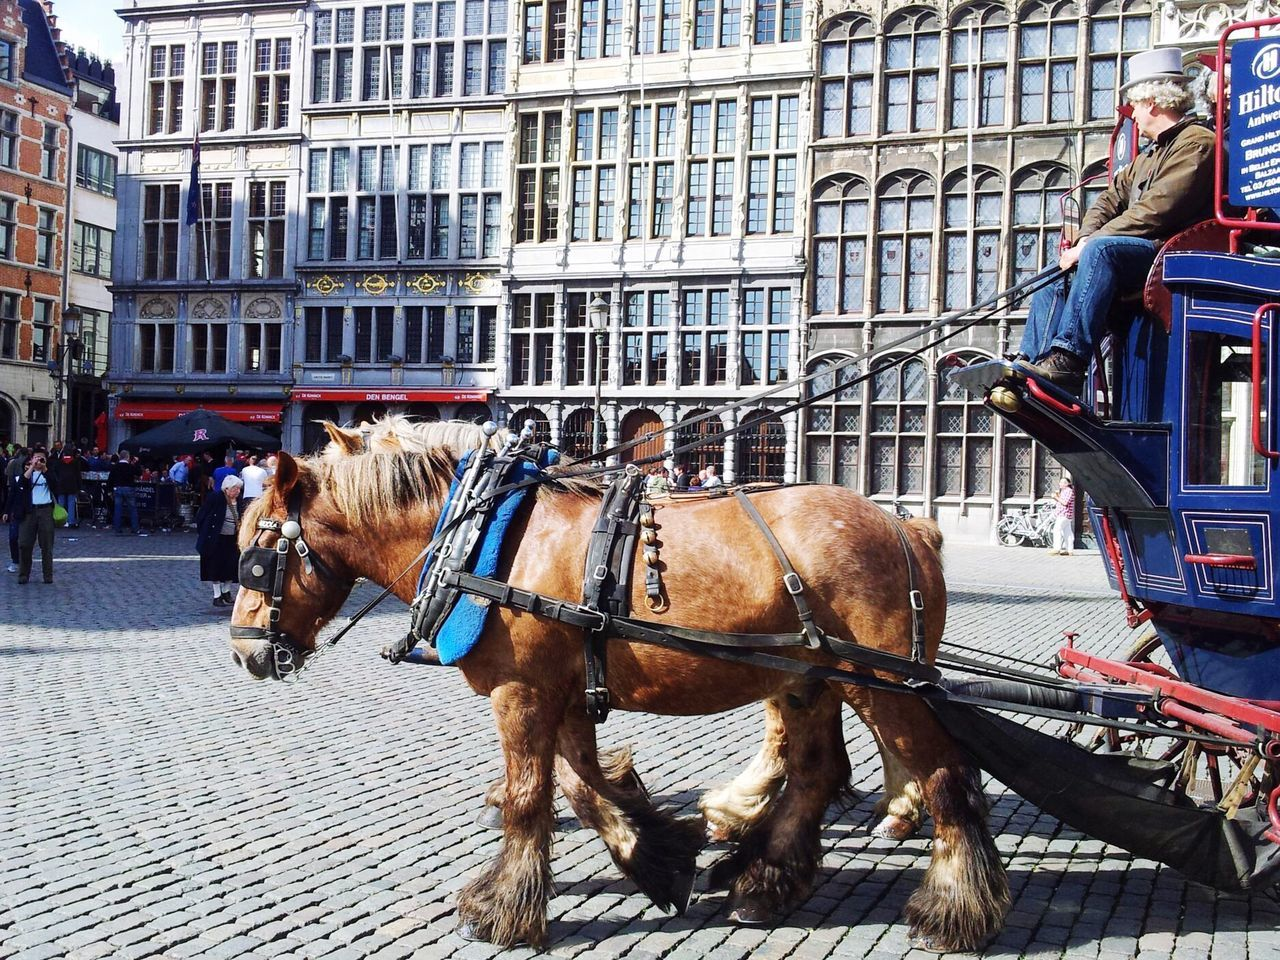 Antverpen Horse Building Exterior City Street Architecture Built Structure Outdoors Real People Mammal Two People Travel Destinations Horsedrawn Day Domestic Animals Men Horse Cart People Adult